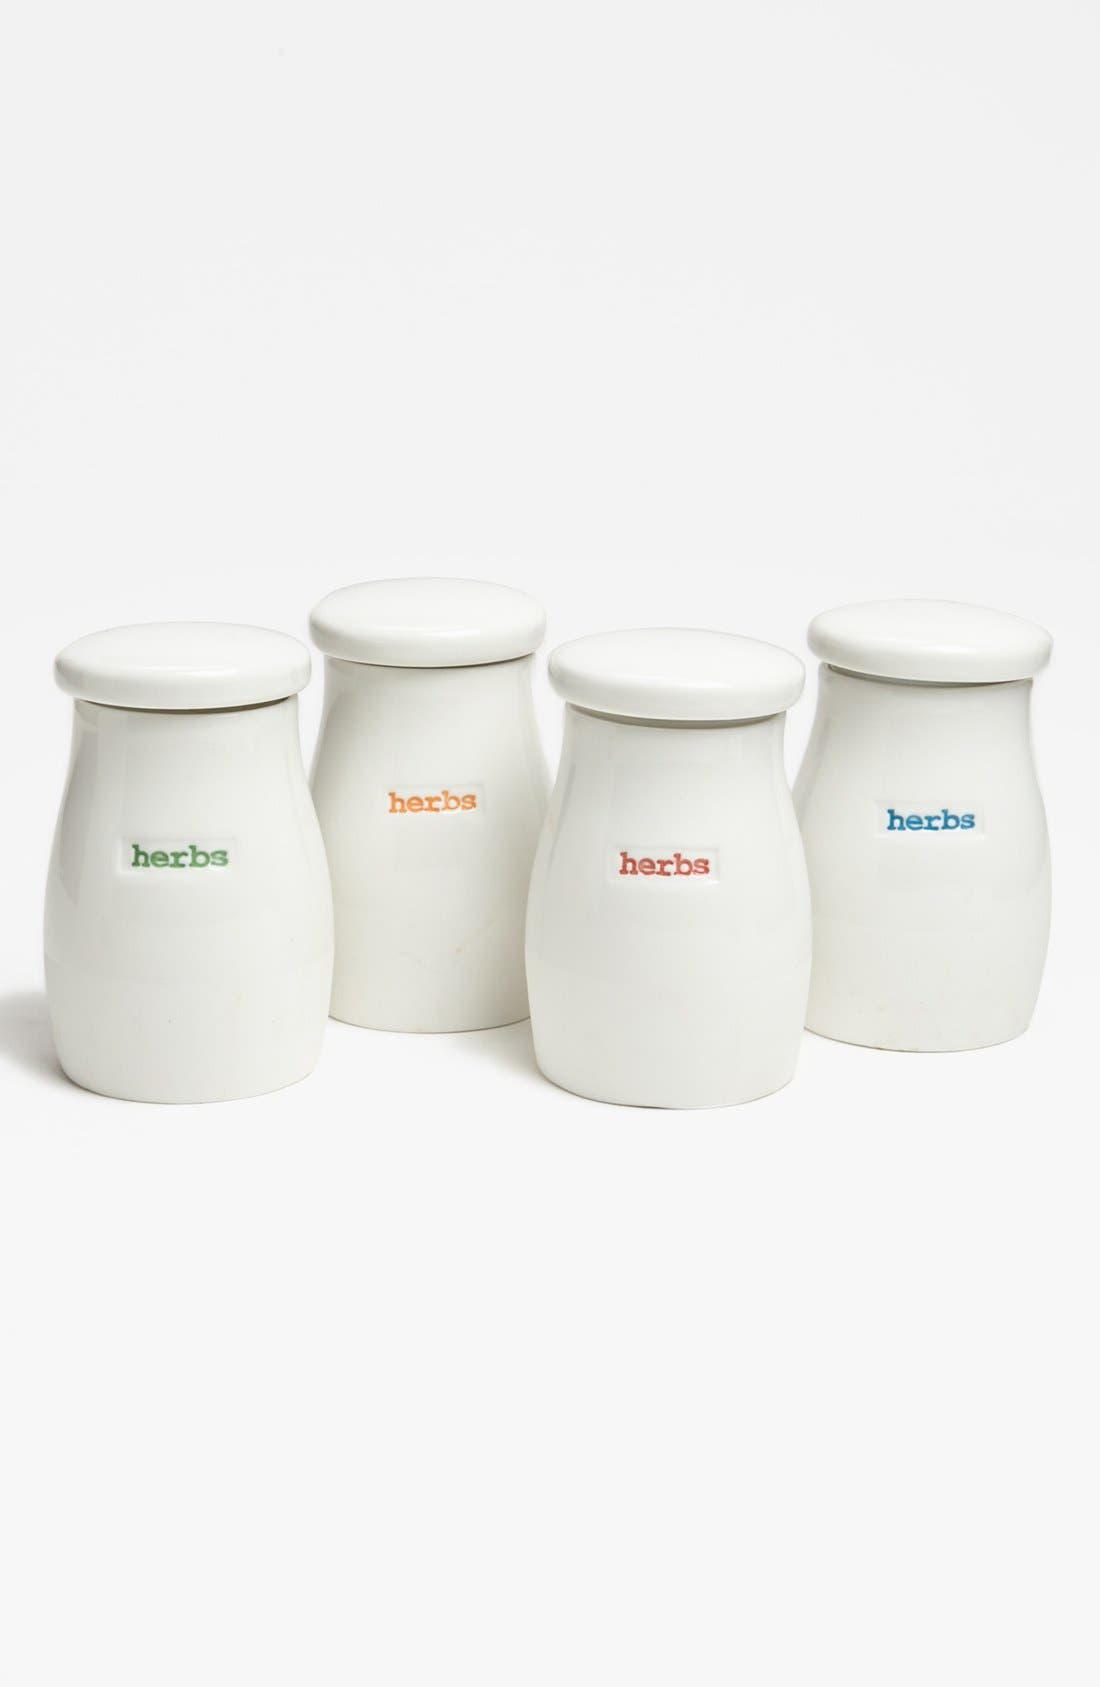 Alternate Image 1 Selected - 'Word Range' Porcelain Herb Jars (Set of 4)